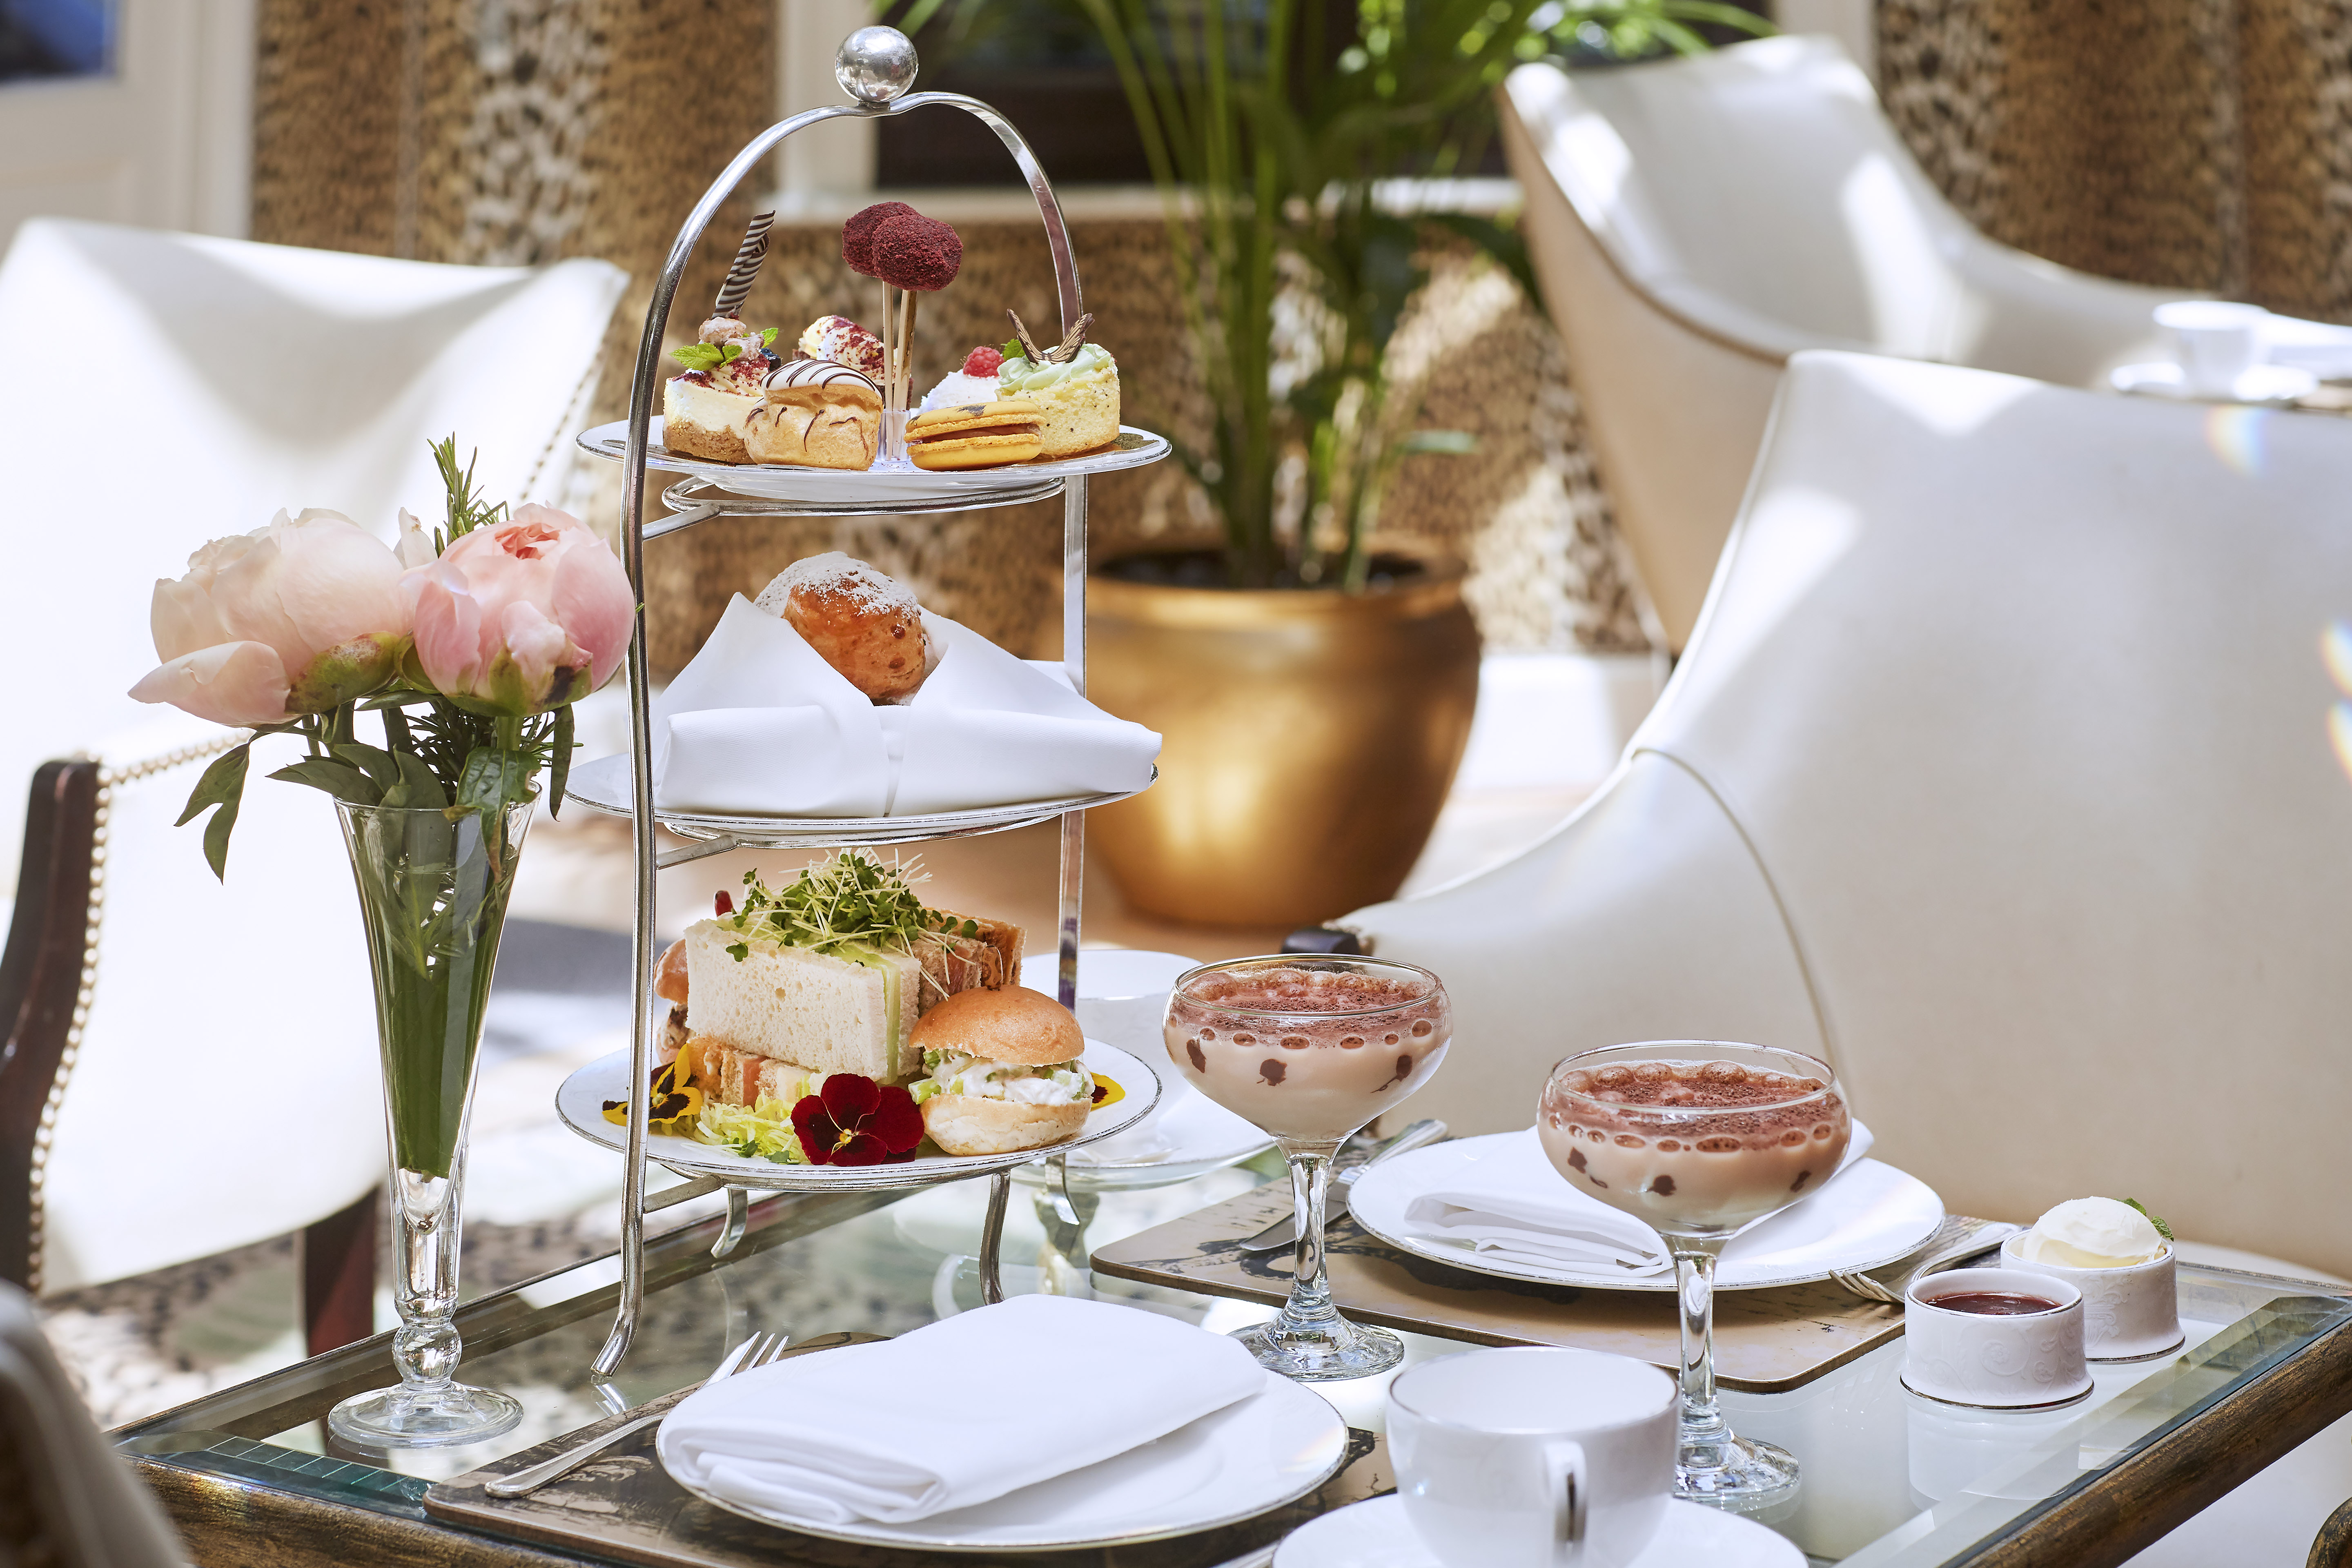 Afternoon Tea at the Montague on the Gardens Hotel